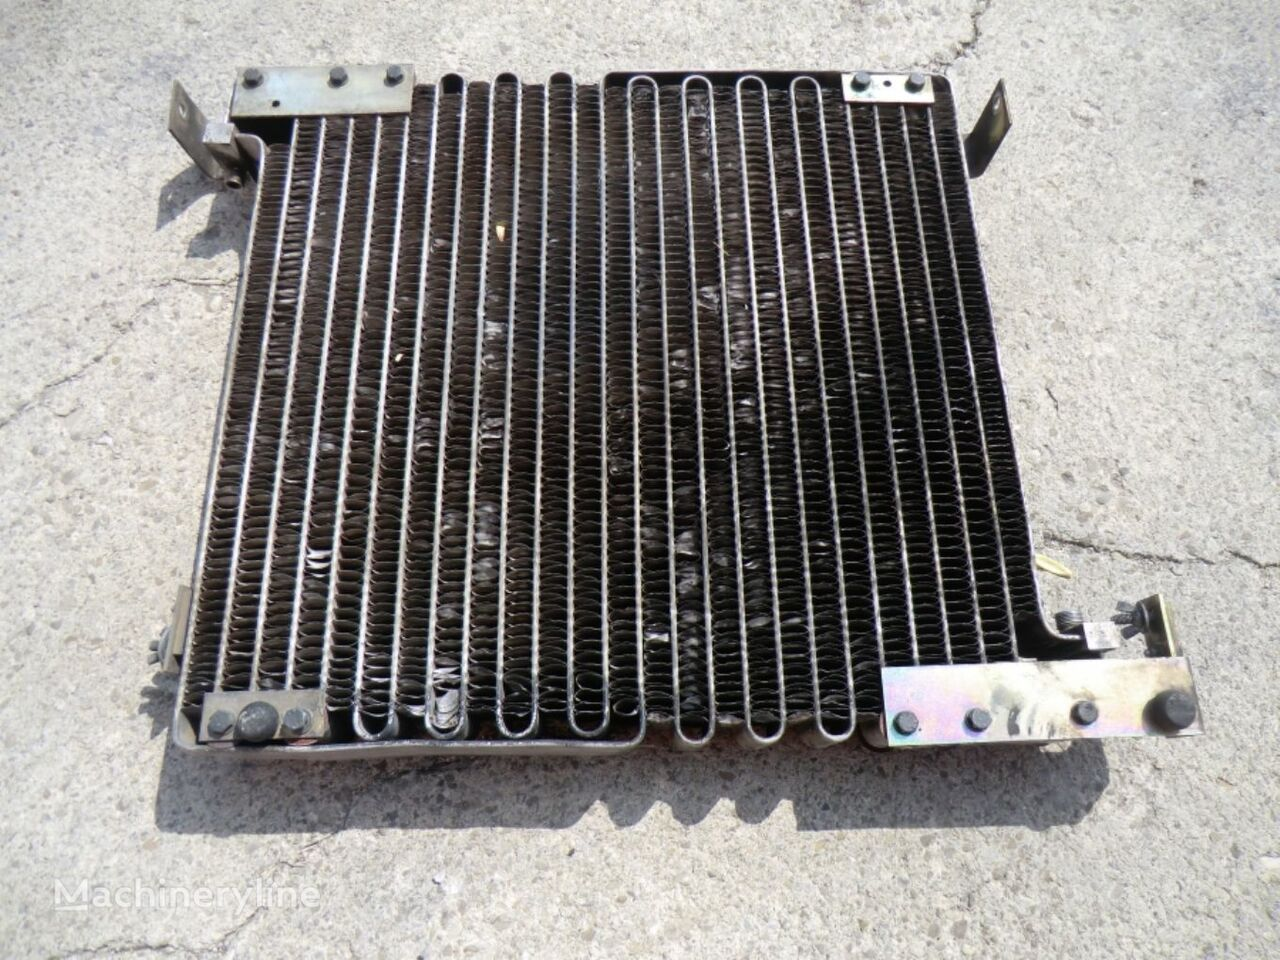 AIR CONDITIONING CONDENSER automobile air conditioning for VOLVO L120C 11757 wheel loader